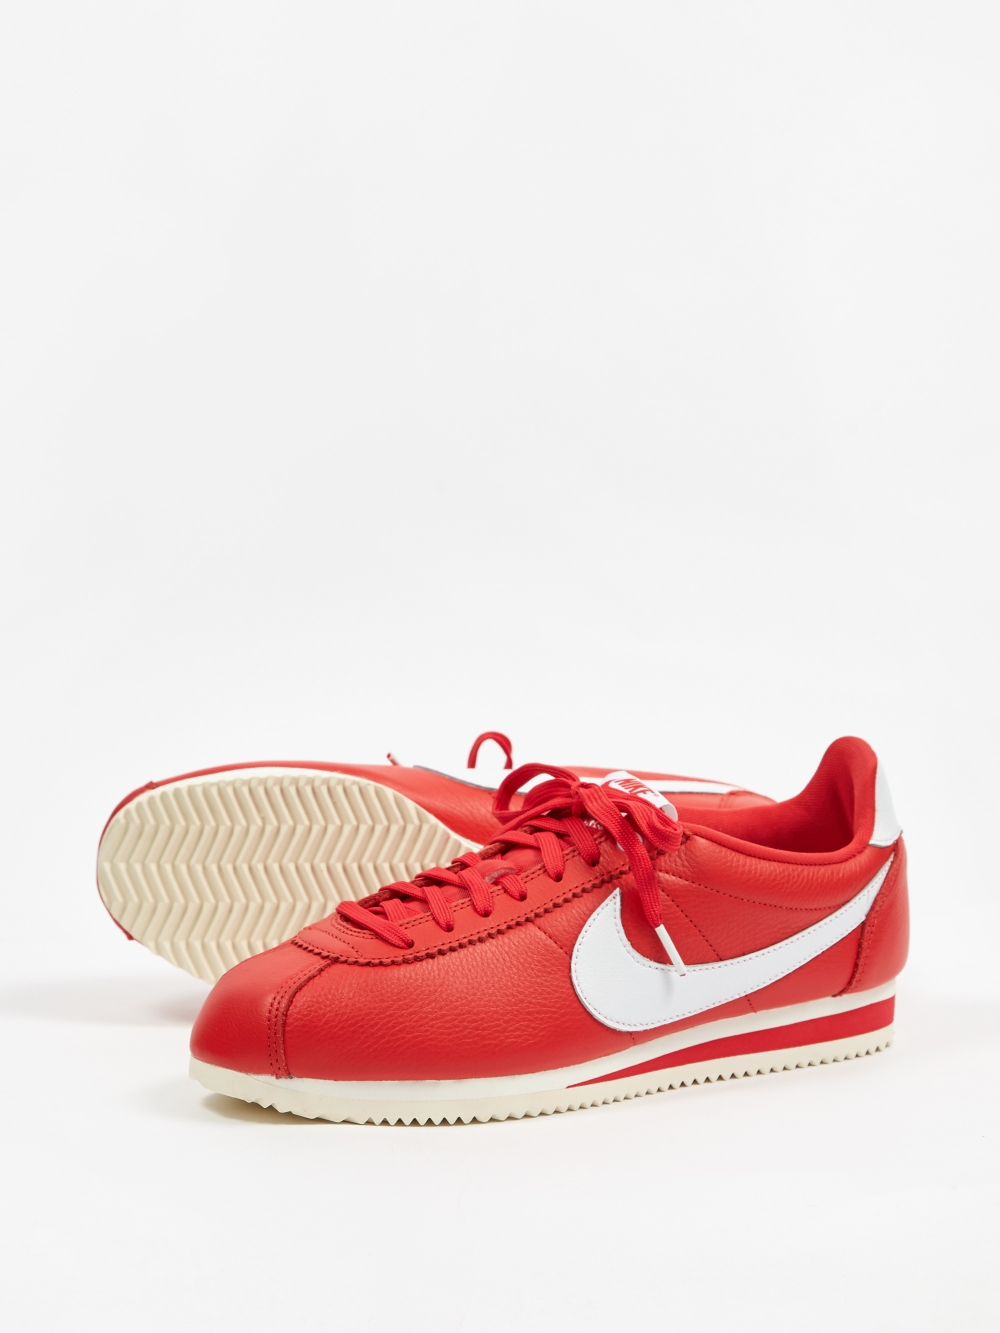 san francisco 337a1 73190 Nike x Stranger Things Cortez (4th of July) - University Red/Whi